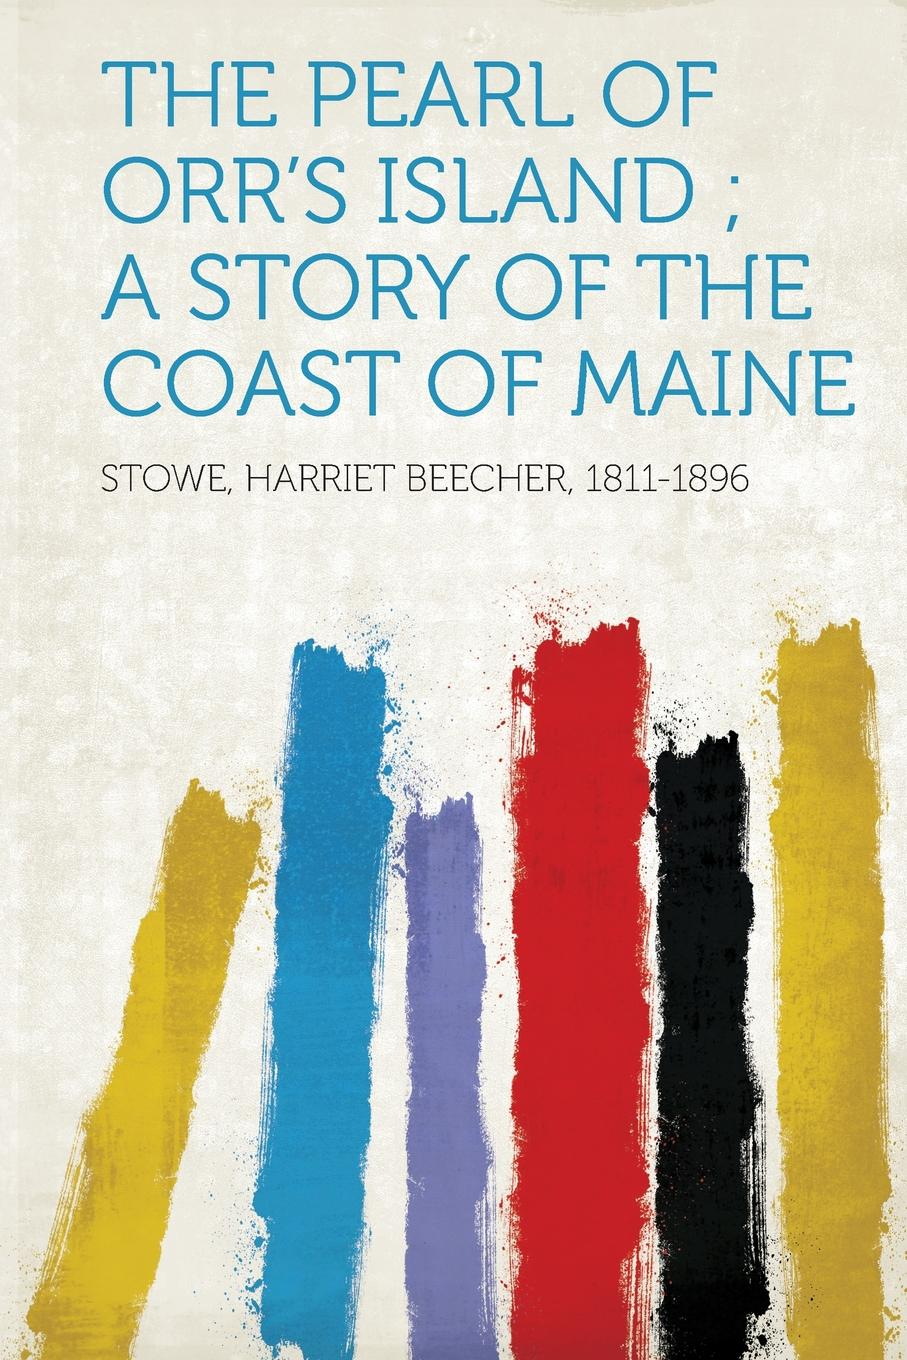 Stowe Harriet Beecher 1811-1896 The Pearl of Orr.s Island ; a Story of the Coast of Maine